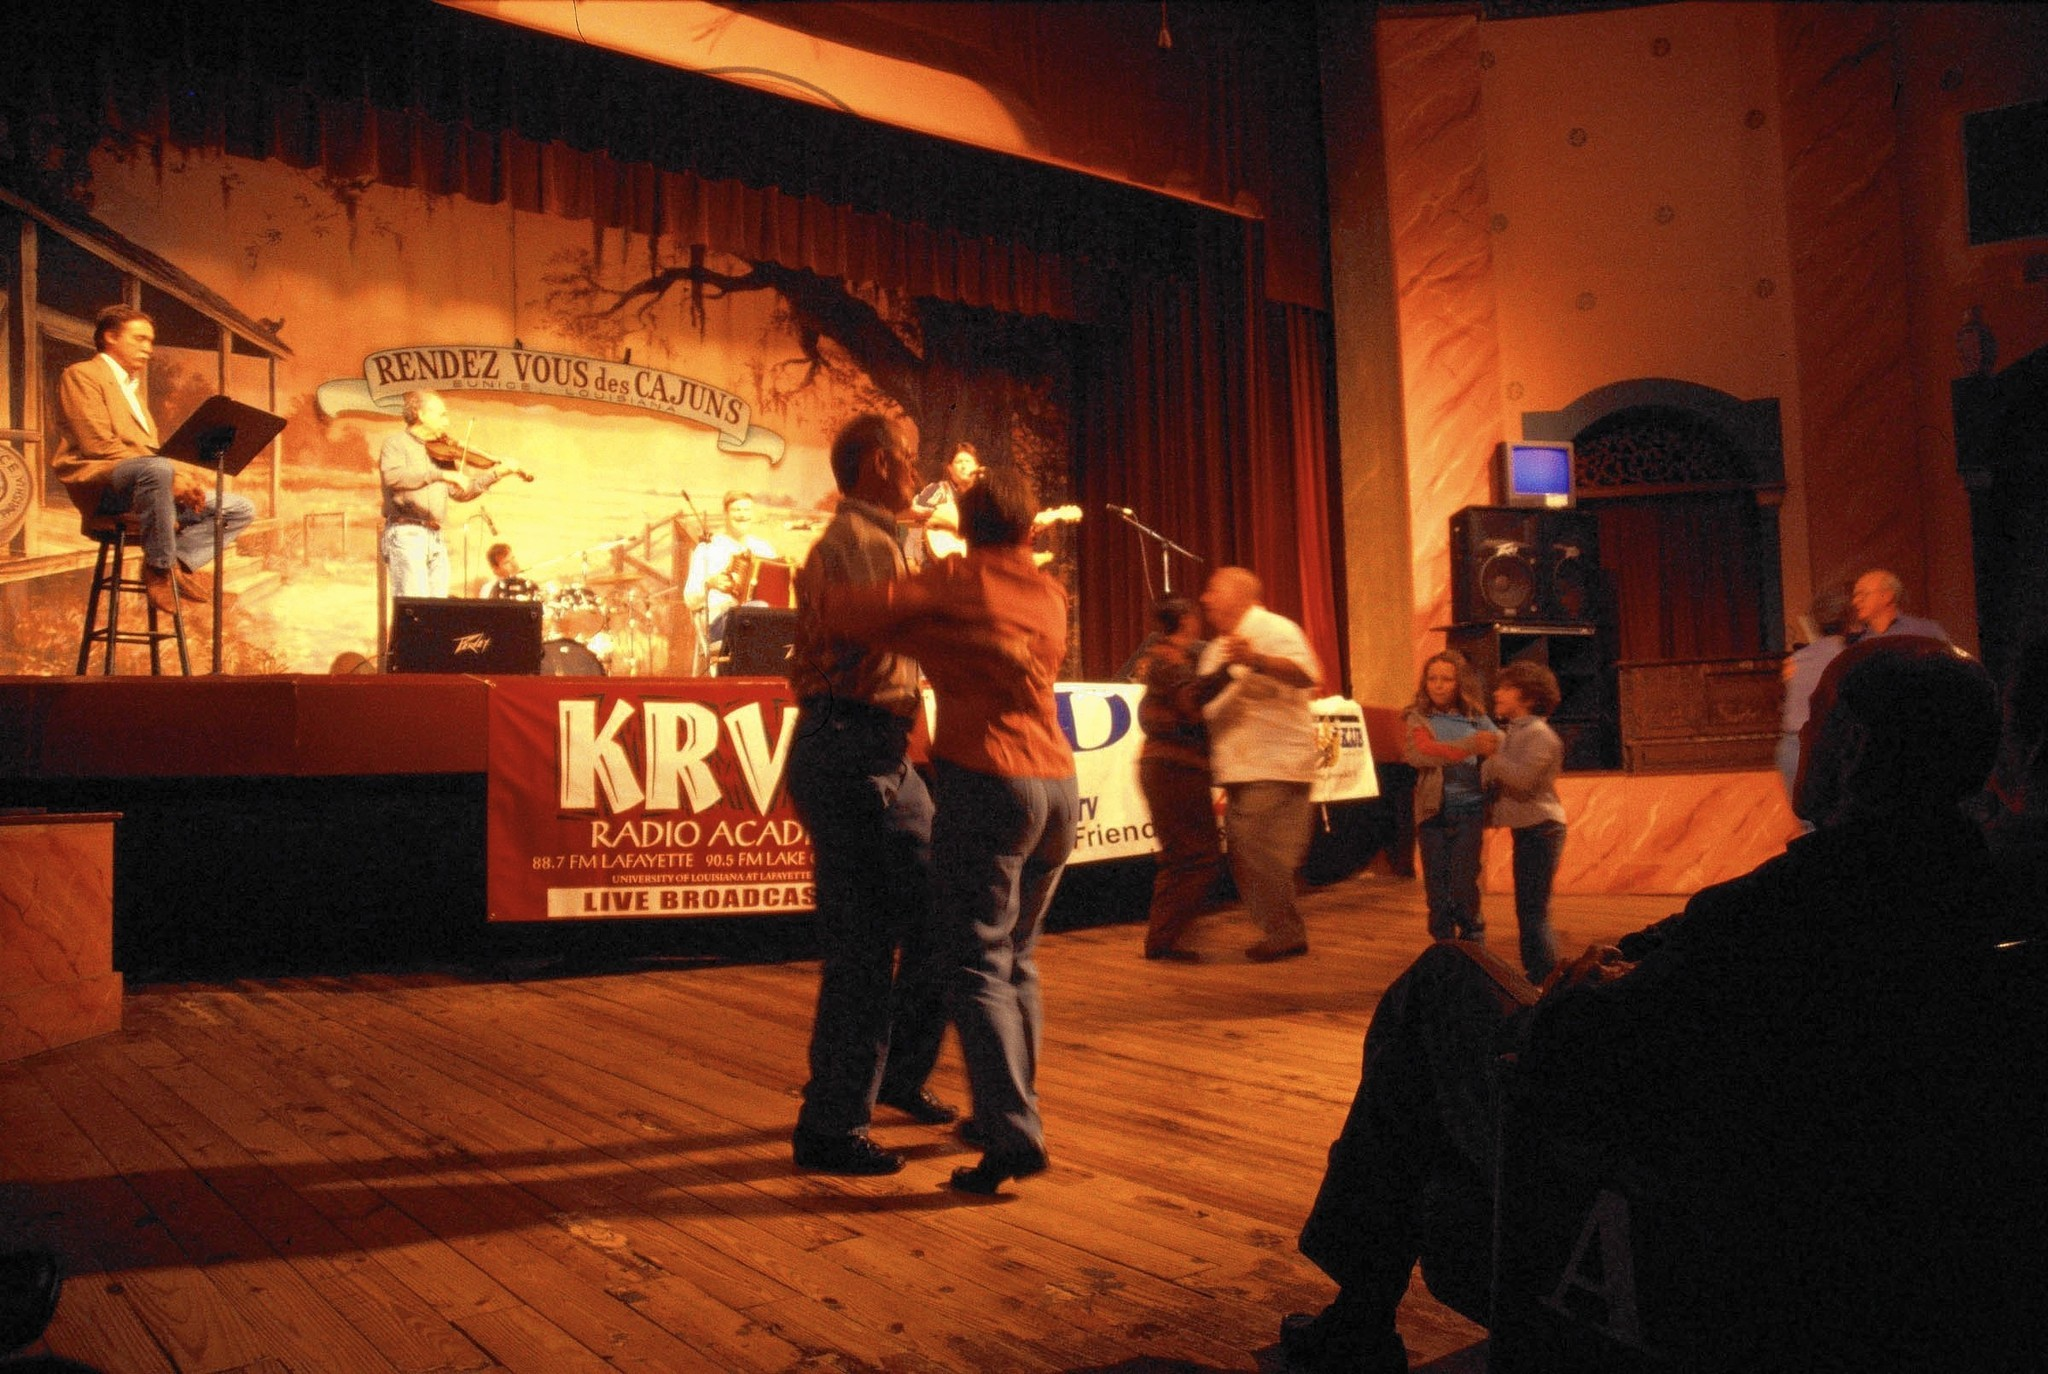 The Cajun Experience means music, food